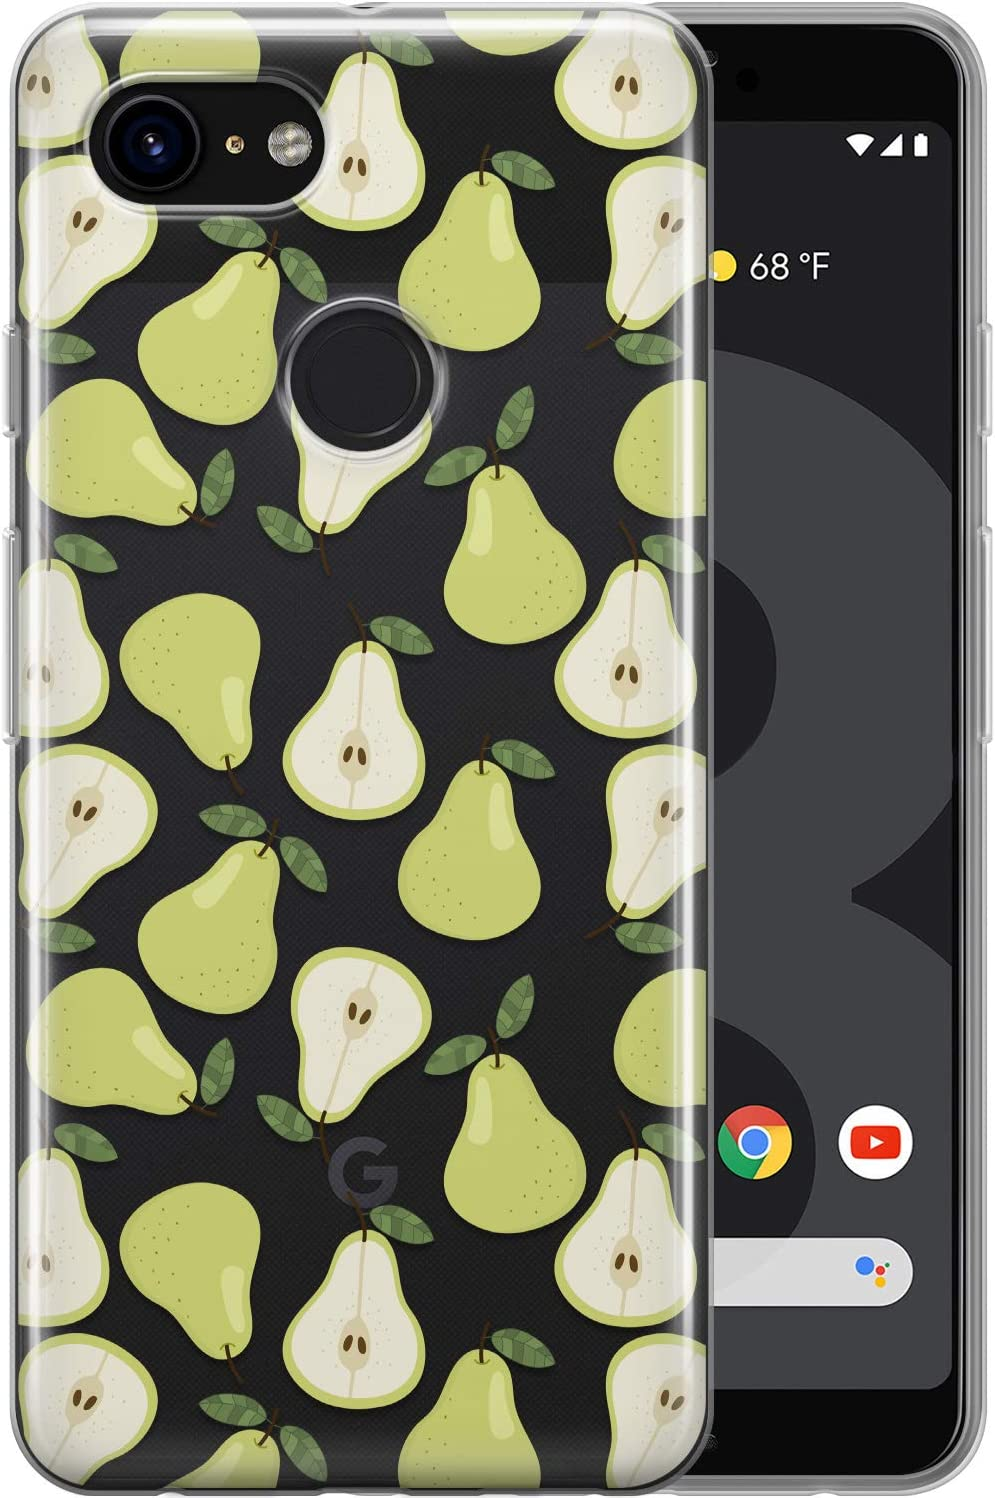 Toik Case Compatible with Google Pixel 5 2020 4a 5G 4 XL 3a XL 3 2 XL 2019 2016 Slim Protective TPU Food Silicone Green Pattern Fruits Pear Cute Clear Simple Cover Flexible Lightweight phpat183